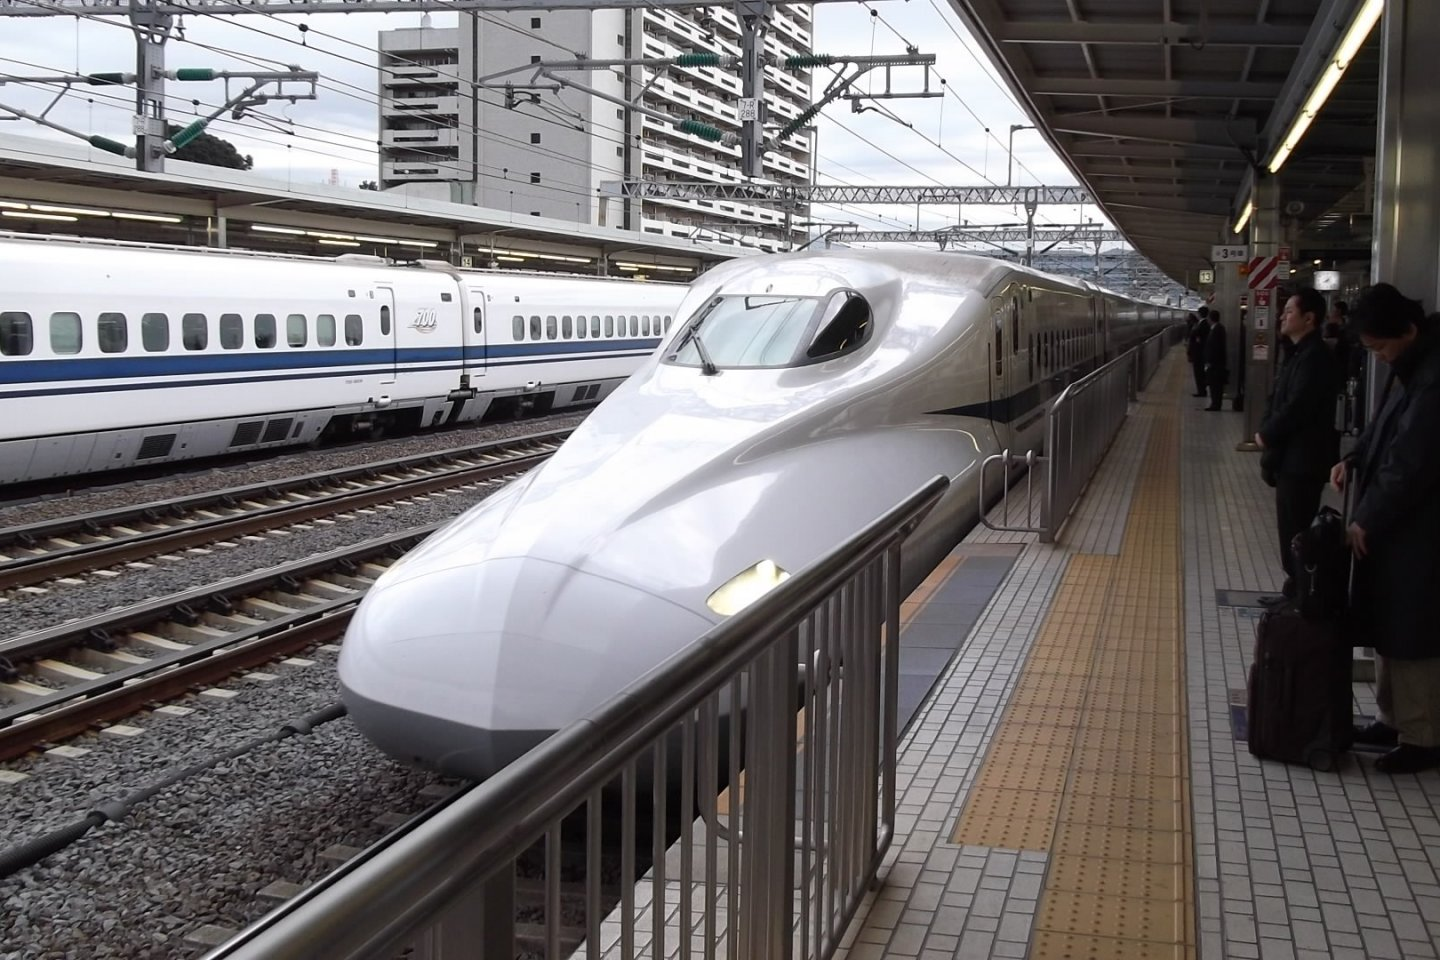 Take a bullet train like this one